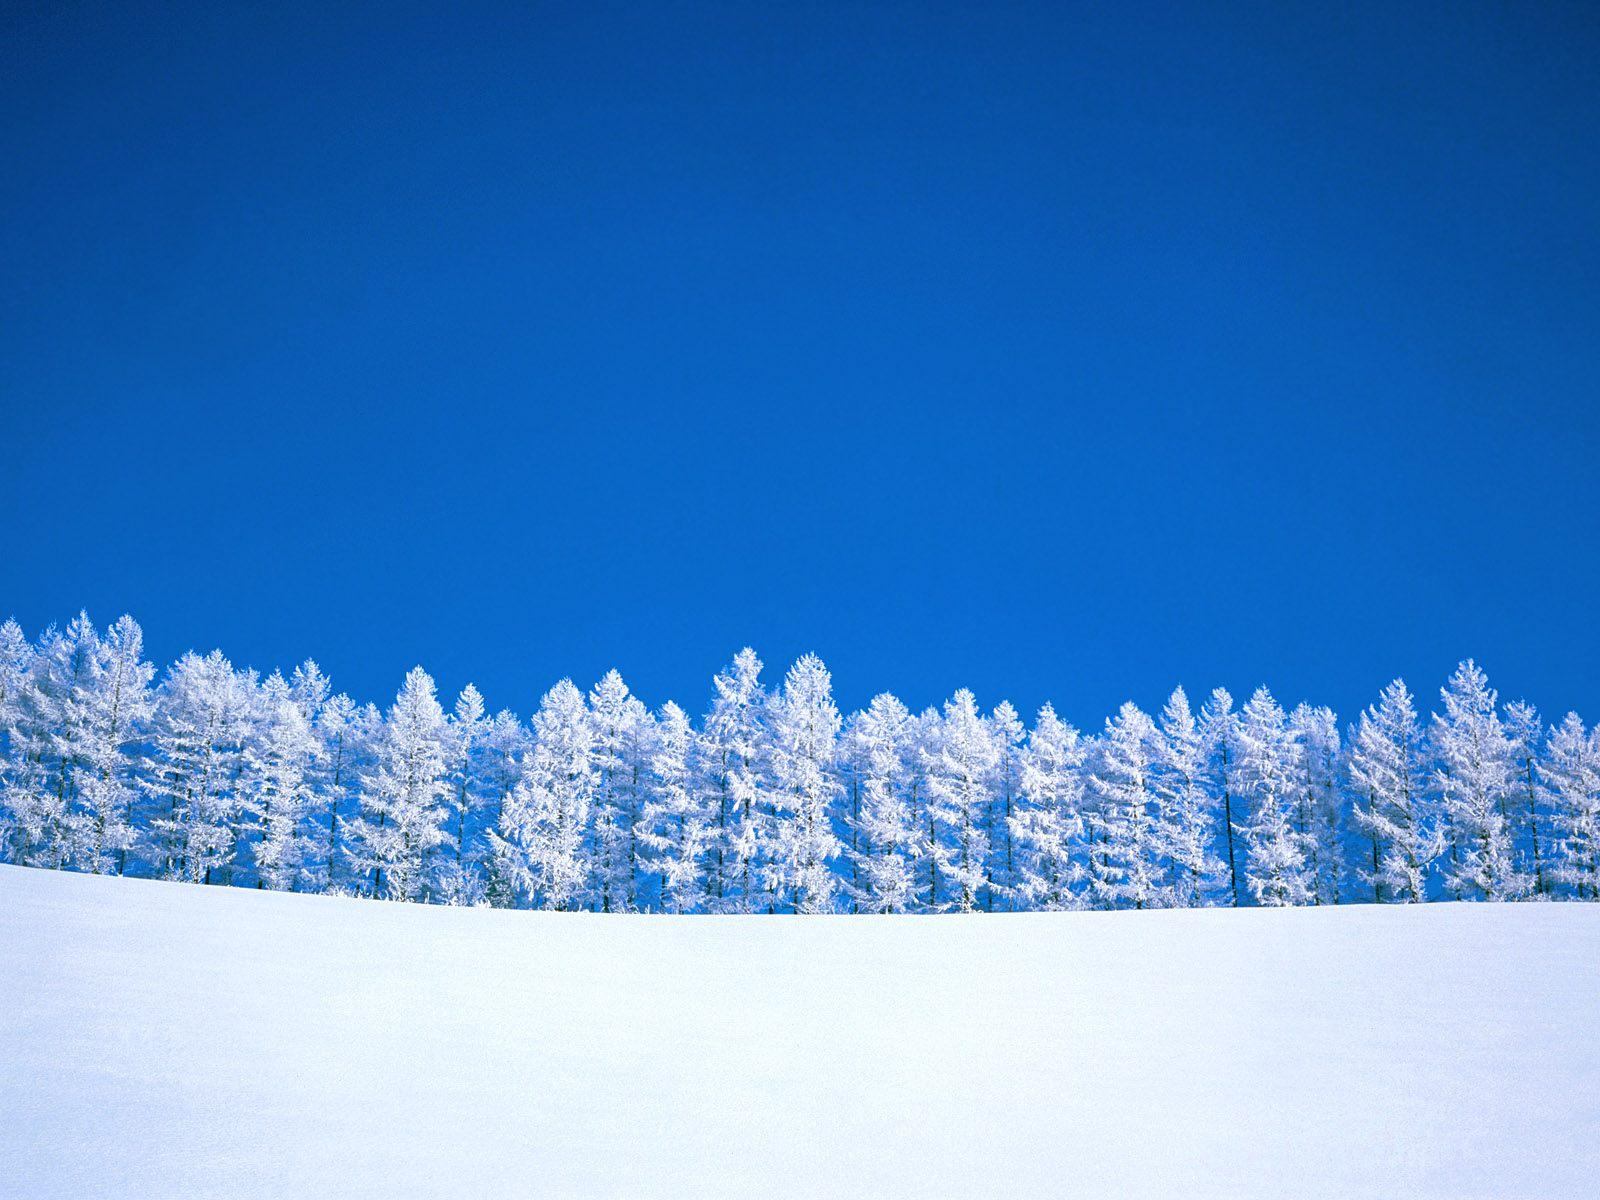 Winter in Snow Free Desktop Background Wallpaper Image